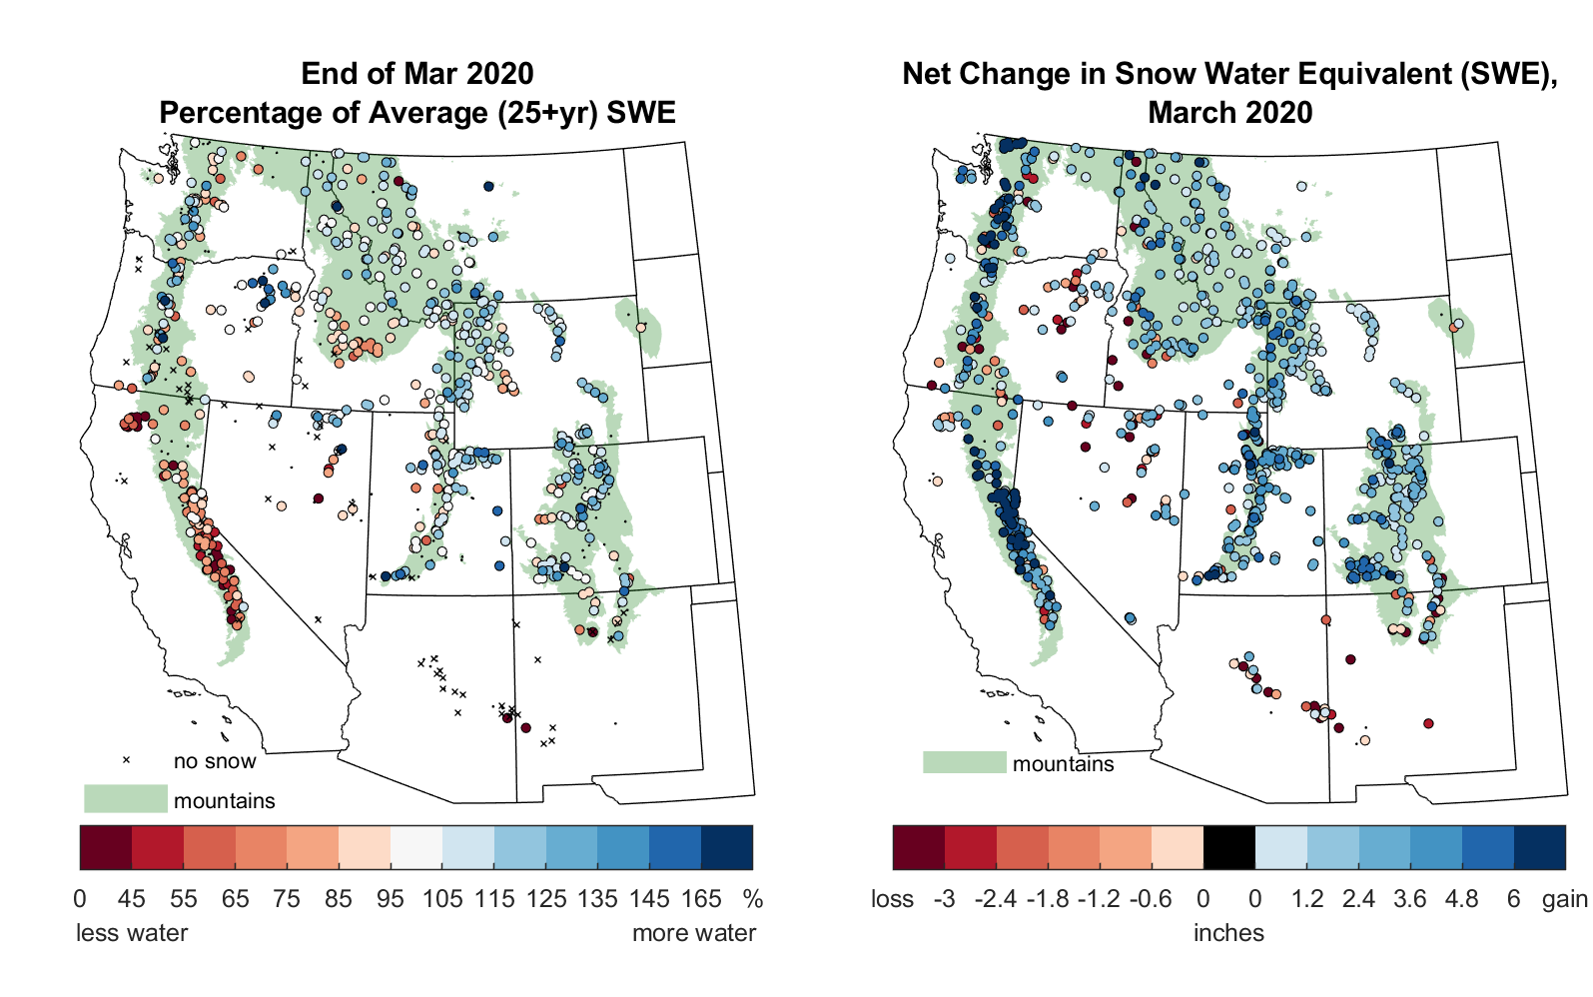 Snow Water Equivalent (SWE) at monitoring sites at the end of March 2020